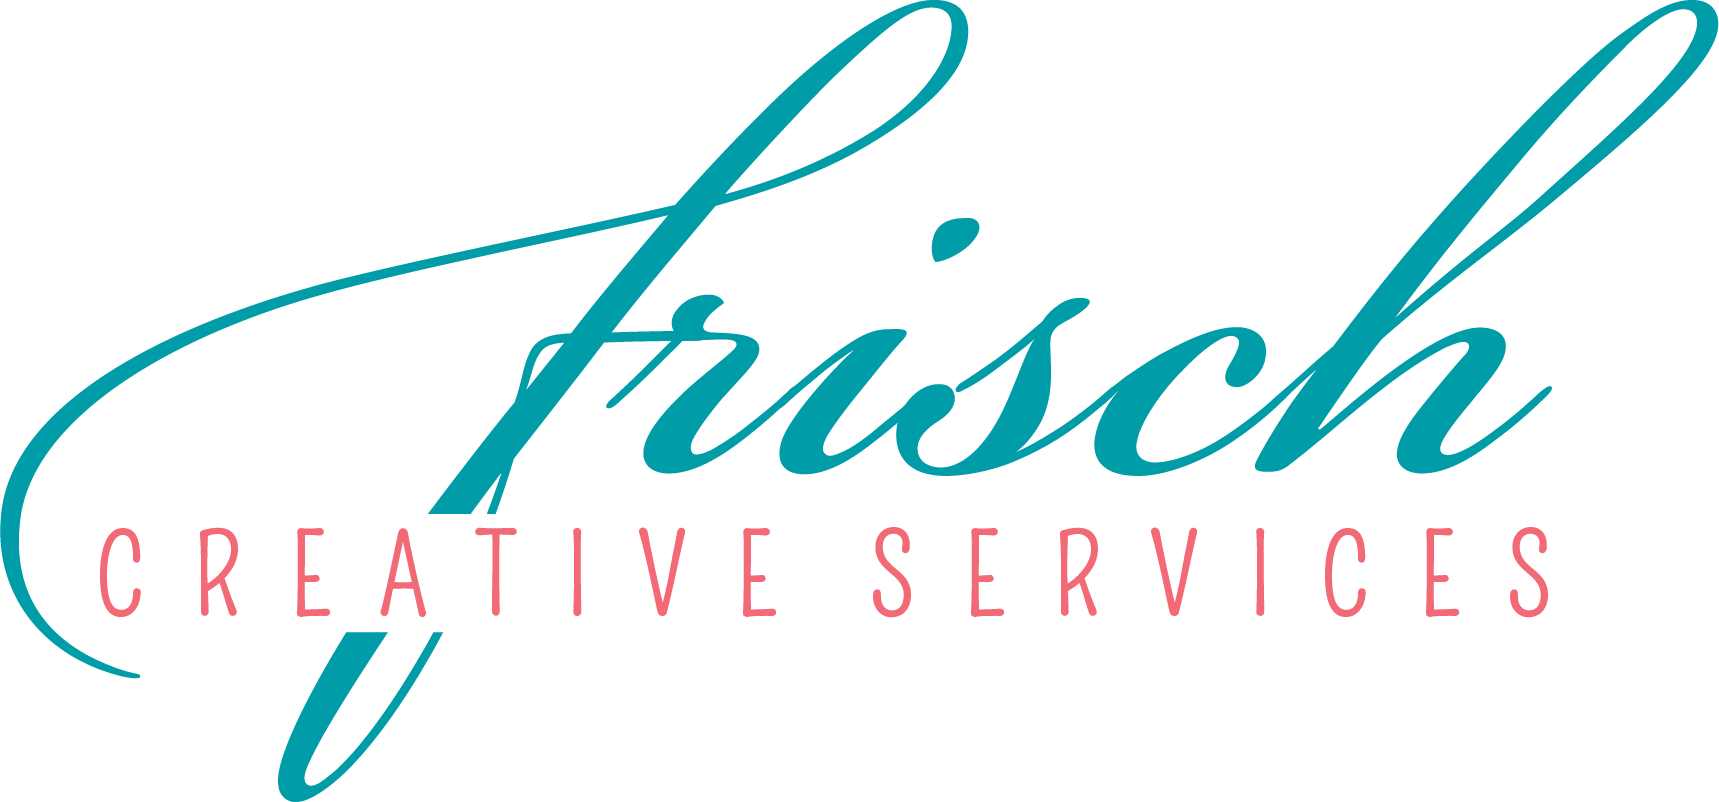 Frisch Creative Services, LLC